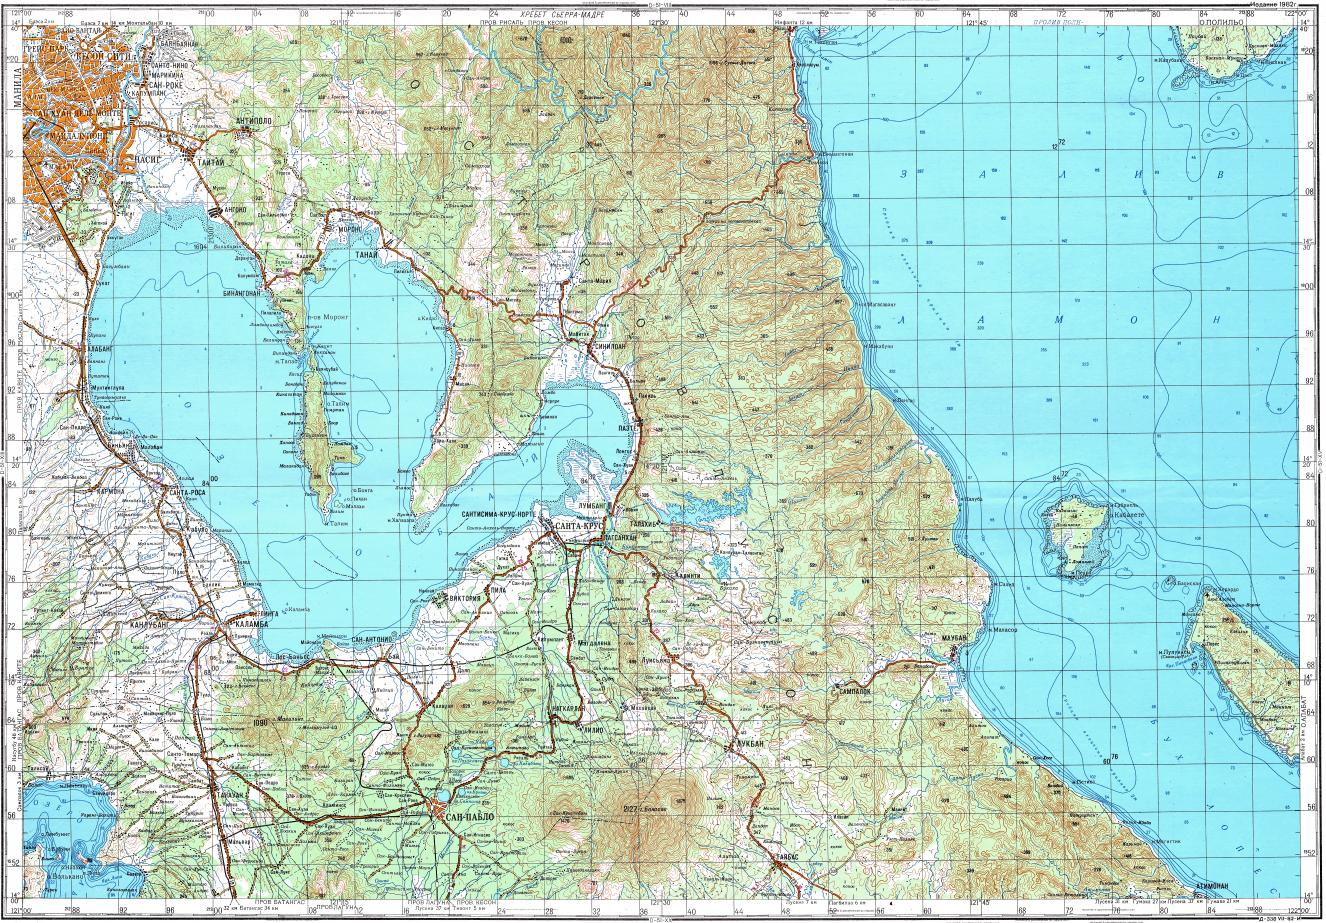 Download topographic map in area of Quezon Quezon City Pasay